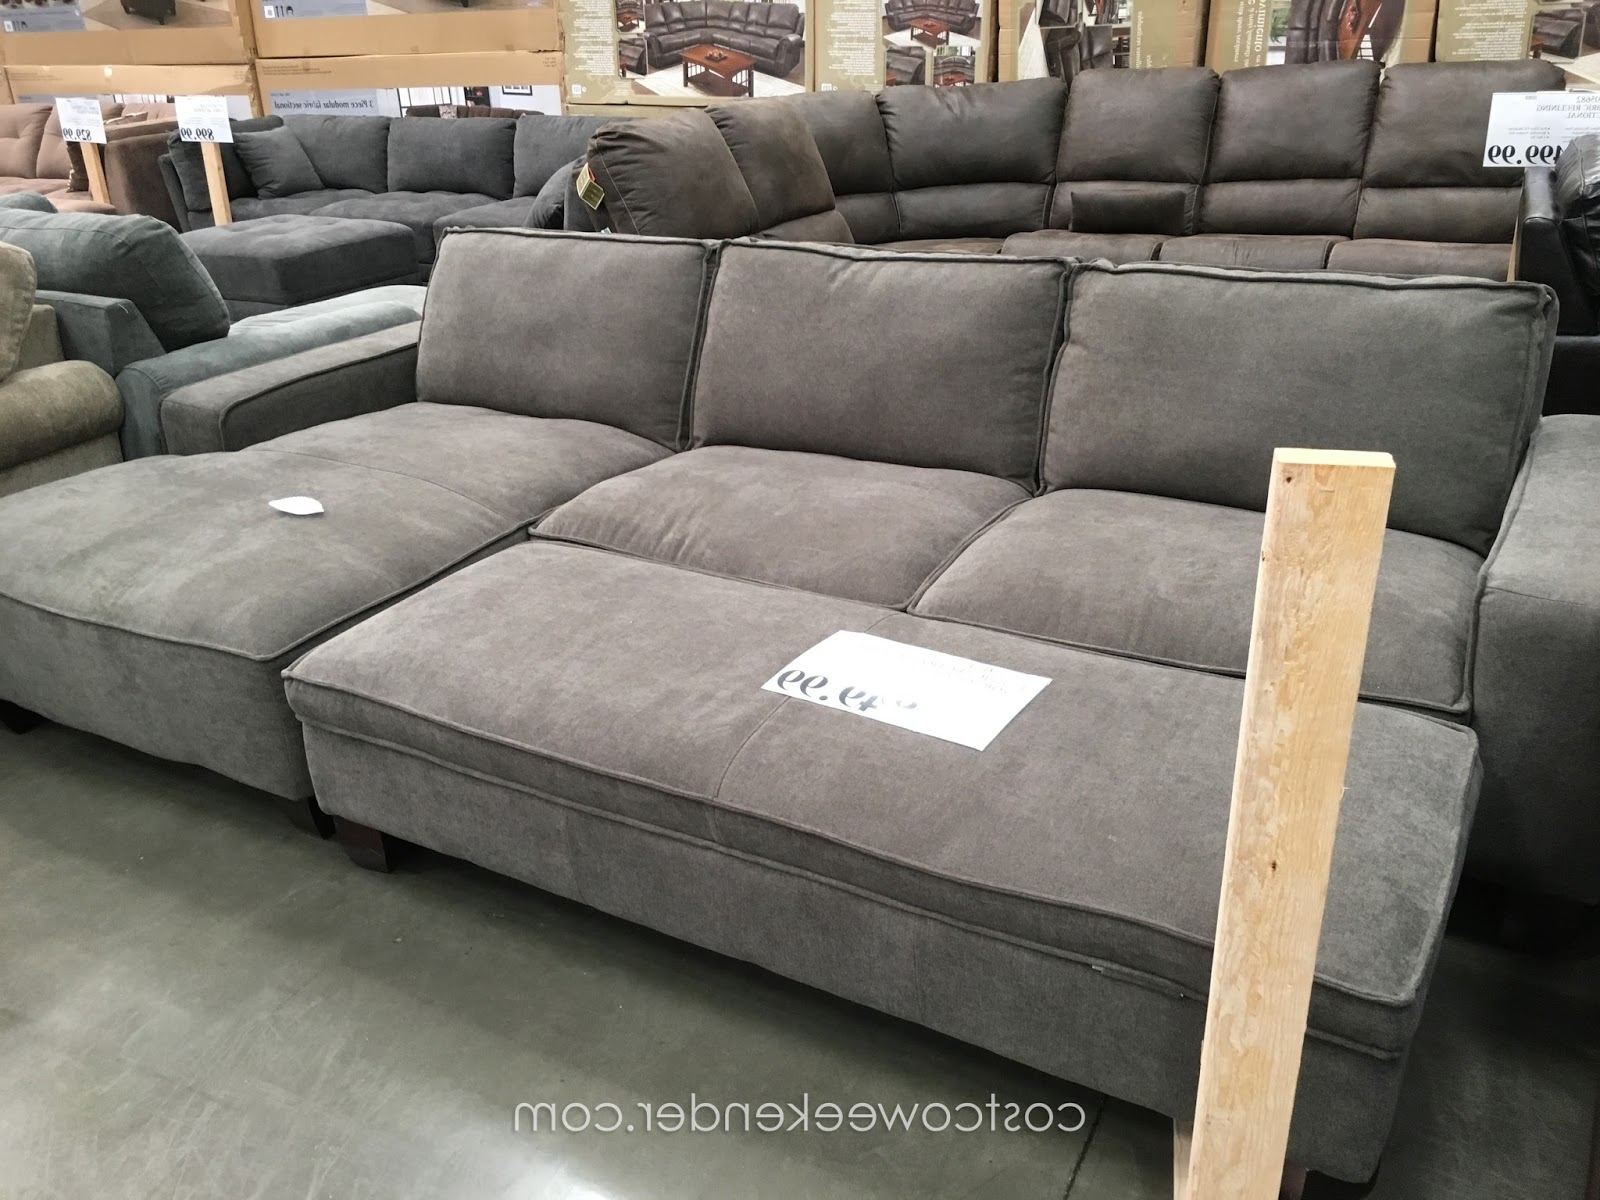 Most Up To Date Sectional Sofa Design: Costco Sectional Sofas Best Ever Leather Pertaining To Leather Sectionals With Ottoman (View 14 of 20)